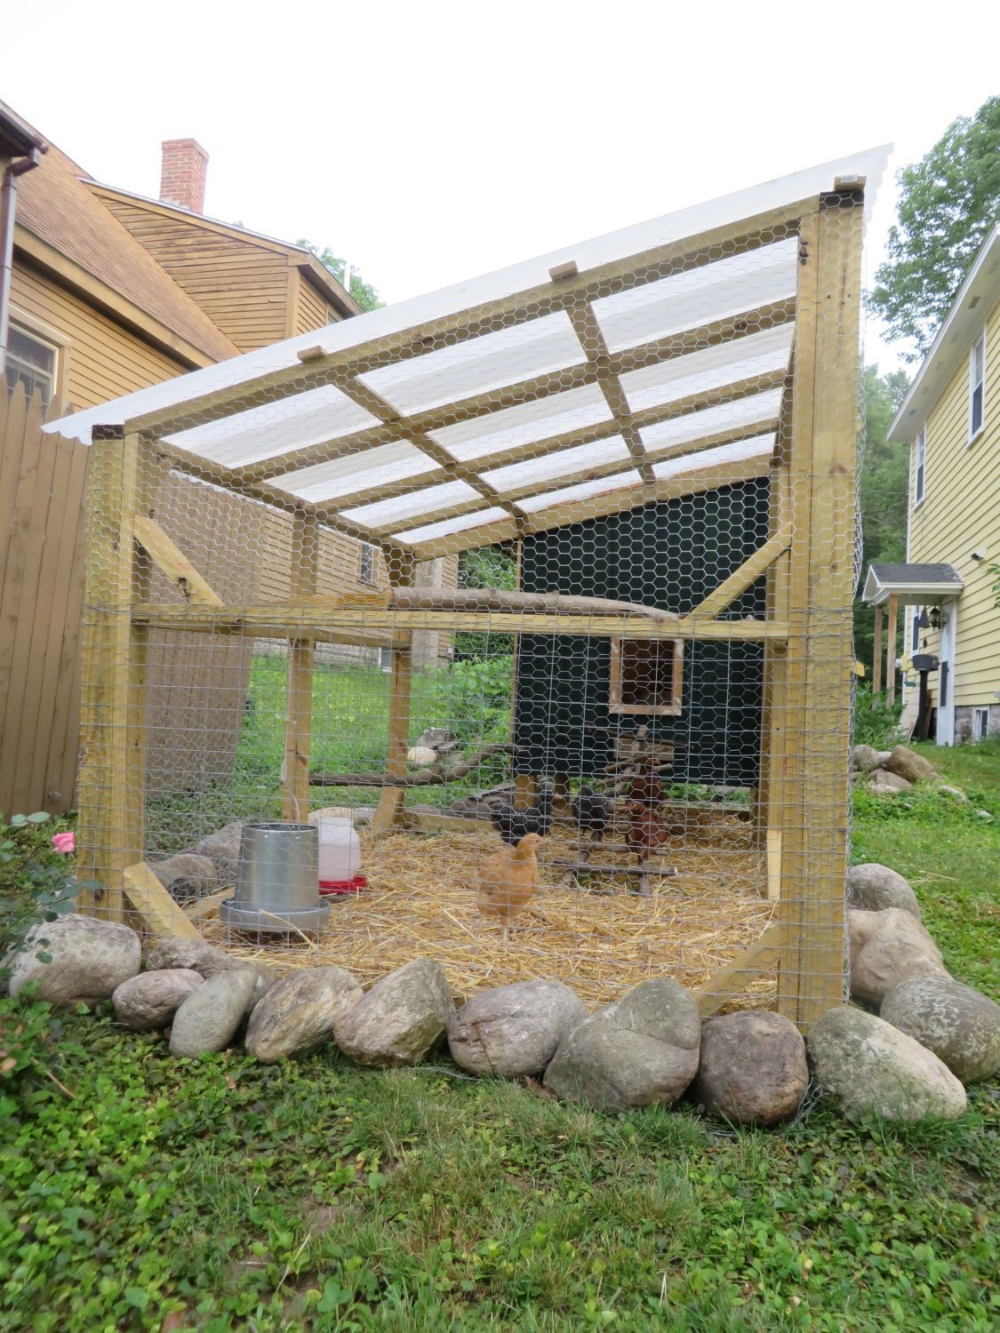 Best chicken coop image by Anna Peterson on Home Stuff ...